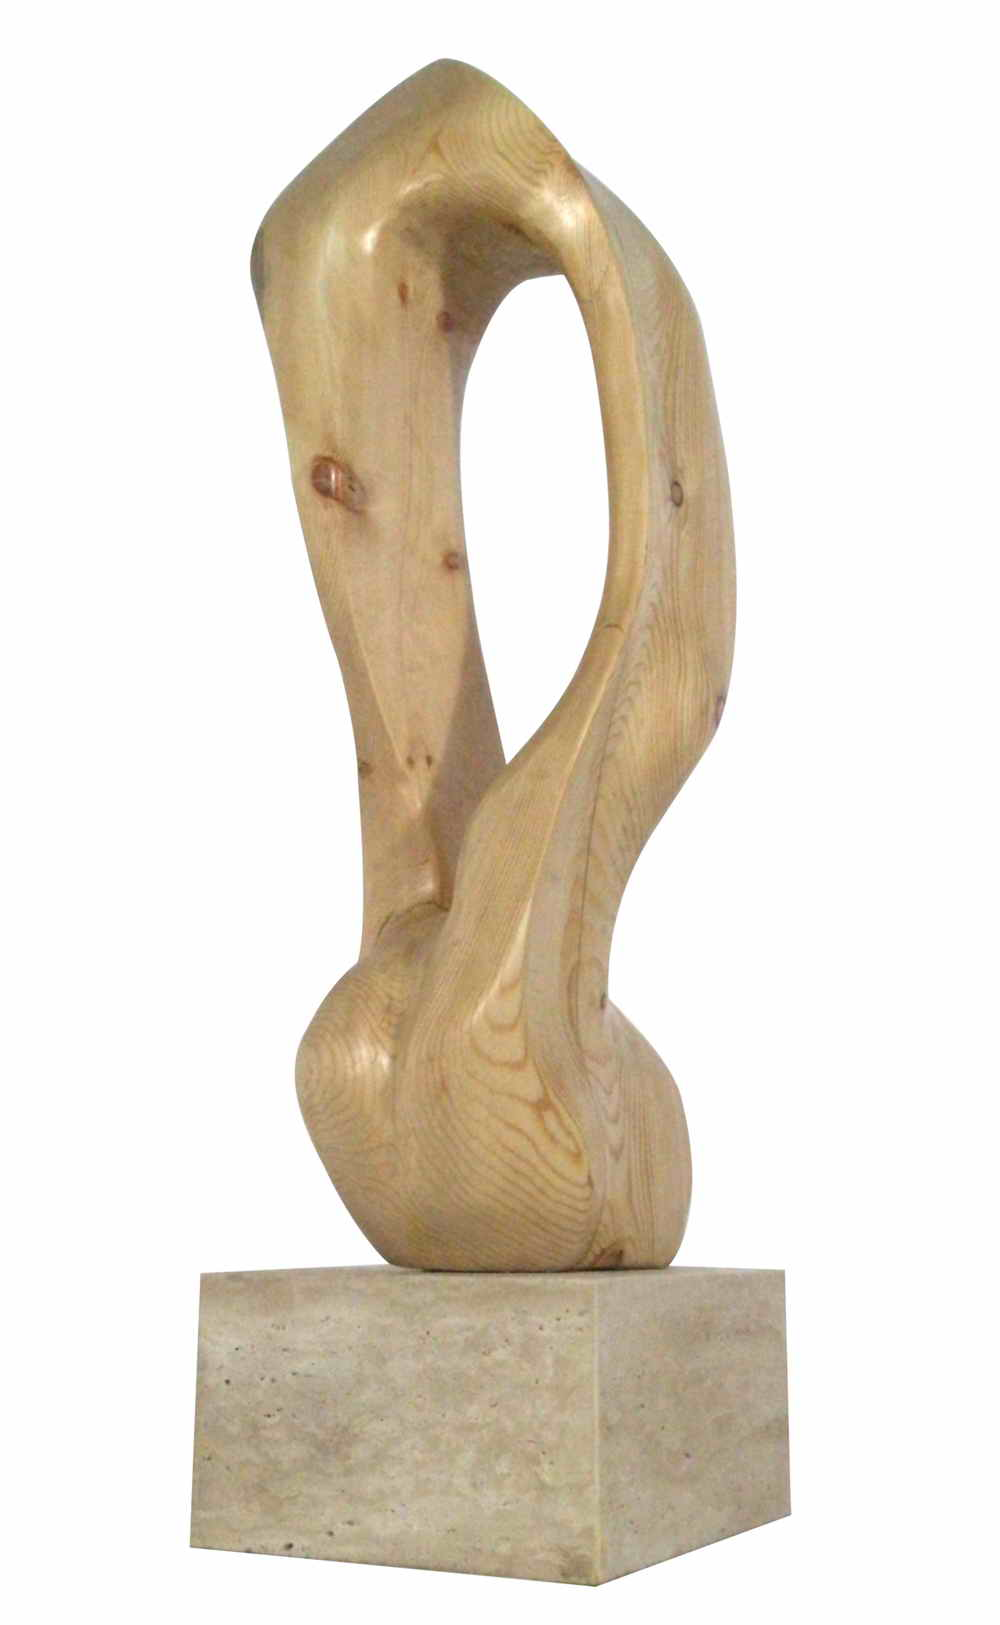 - abstract-modern-wood-sculpture-wood-carving